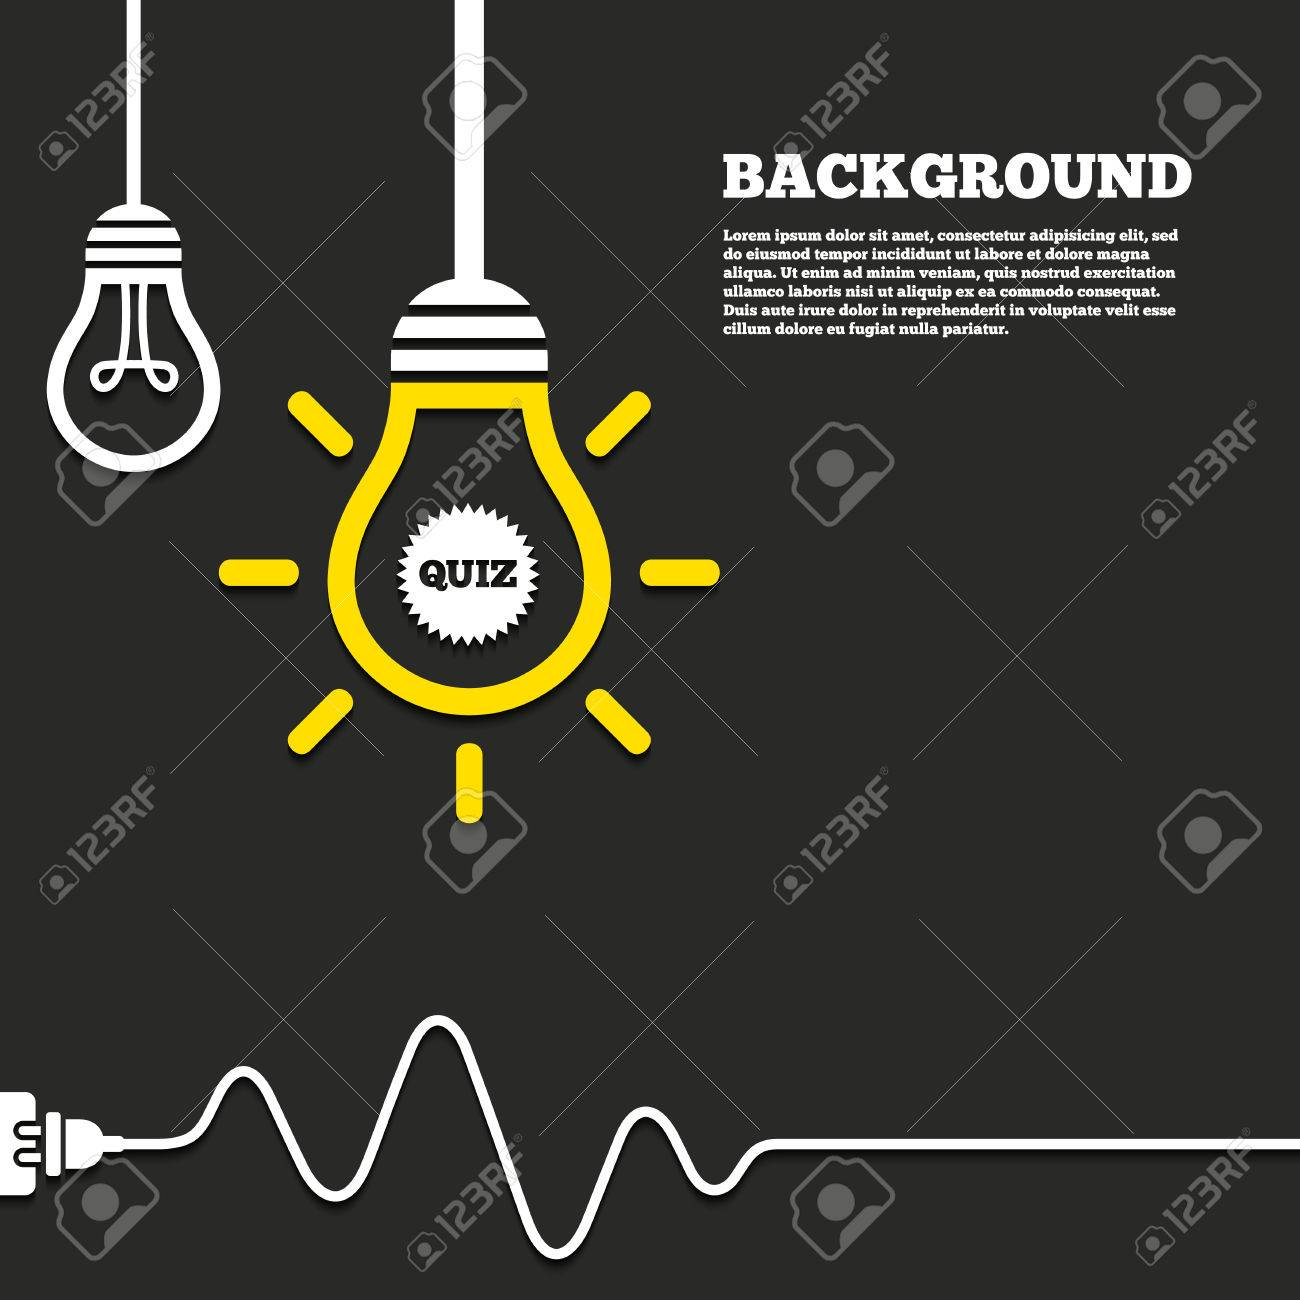 idea lamp electric plug background quiz star sign icon idea lamp electric plug background quiz star sign icon questions and answers game